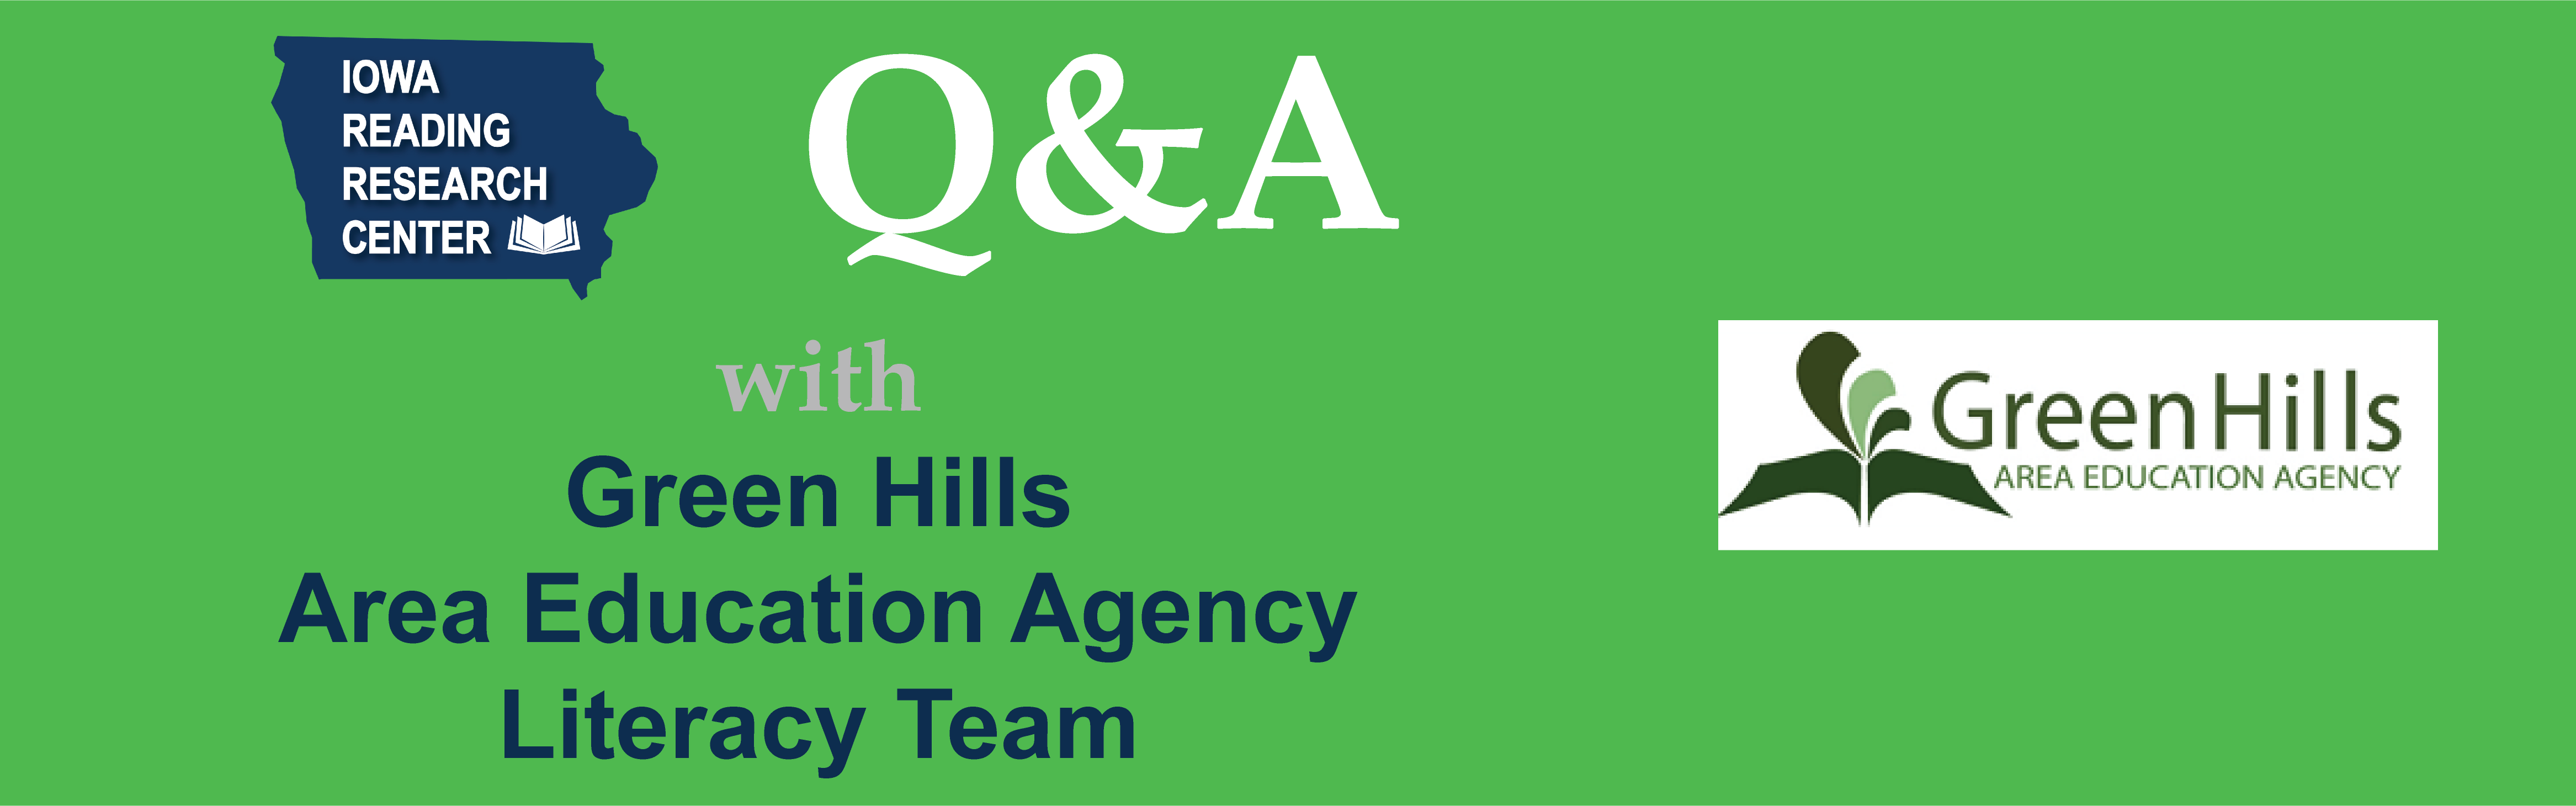 Q&A with Green Hills AEA